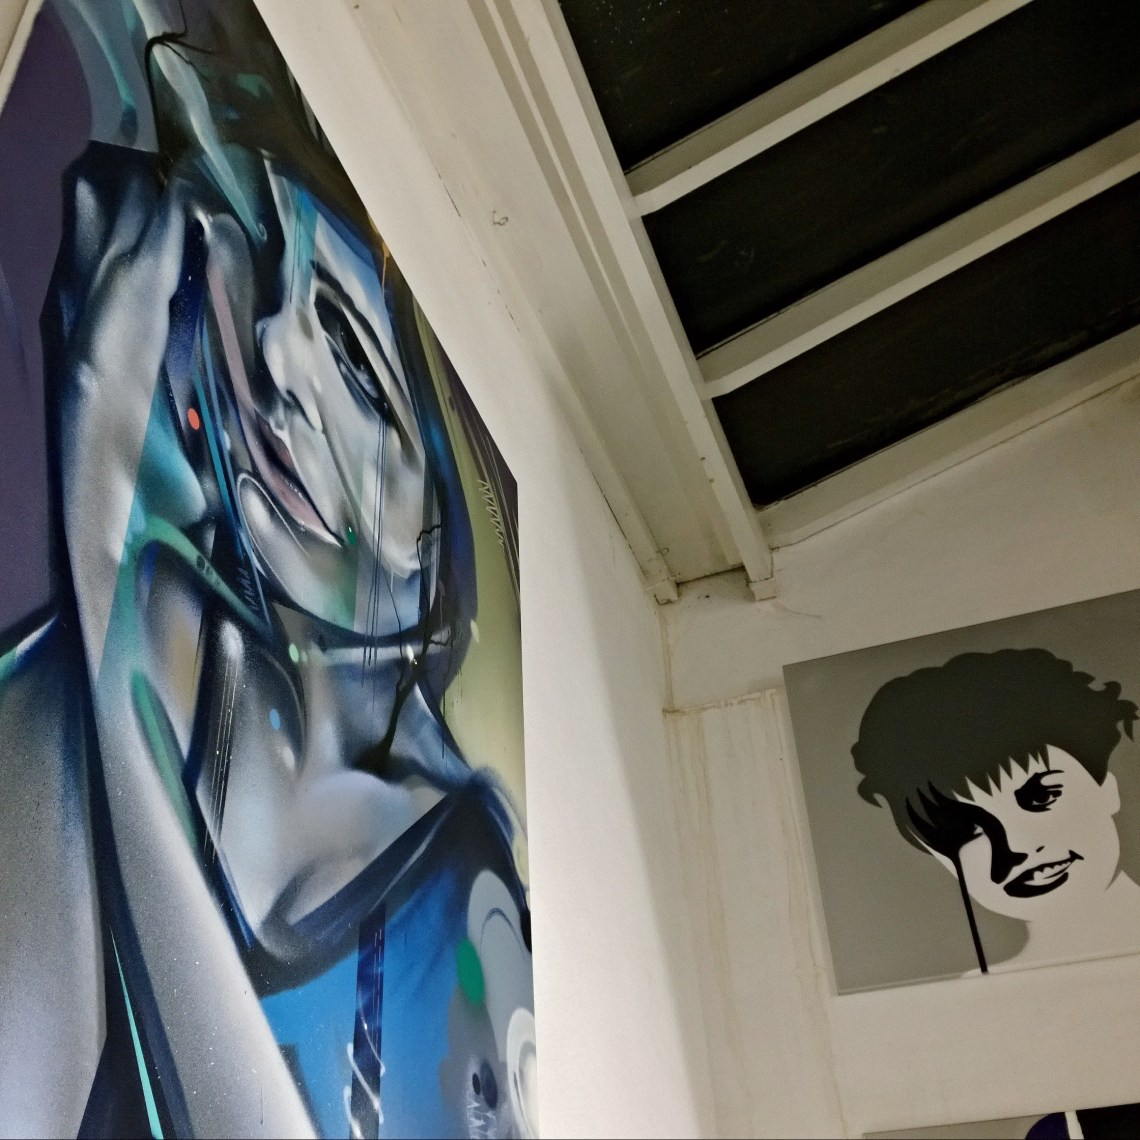 Mr Cenz art with work from Pure Evil in the background